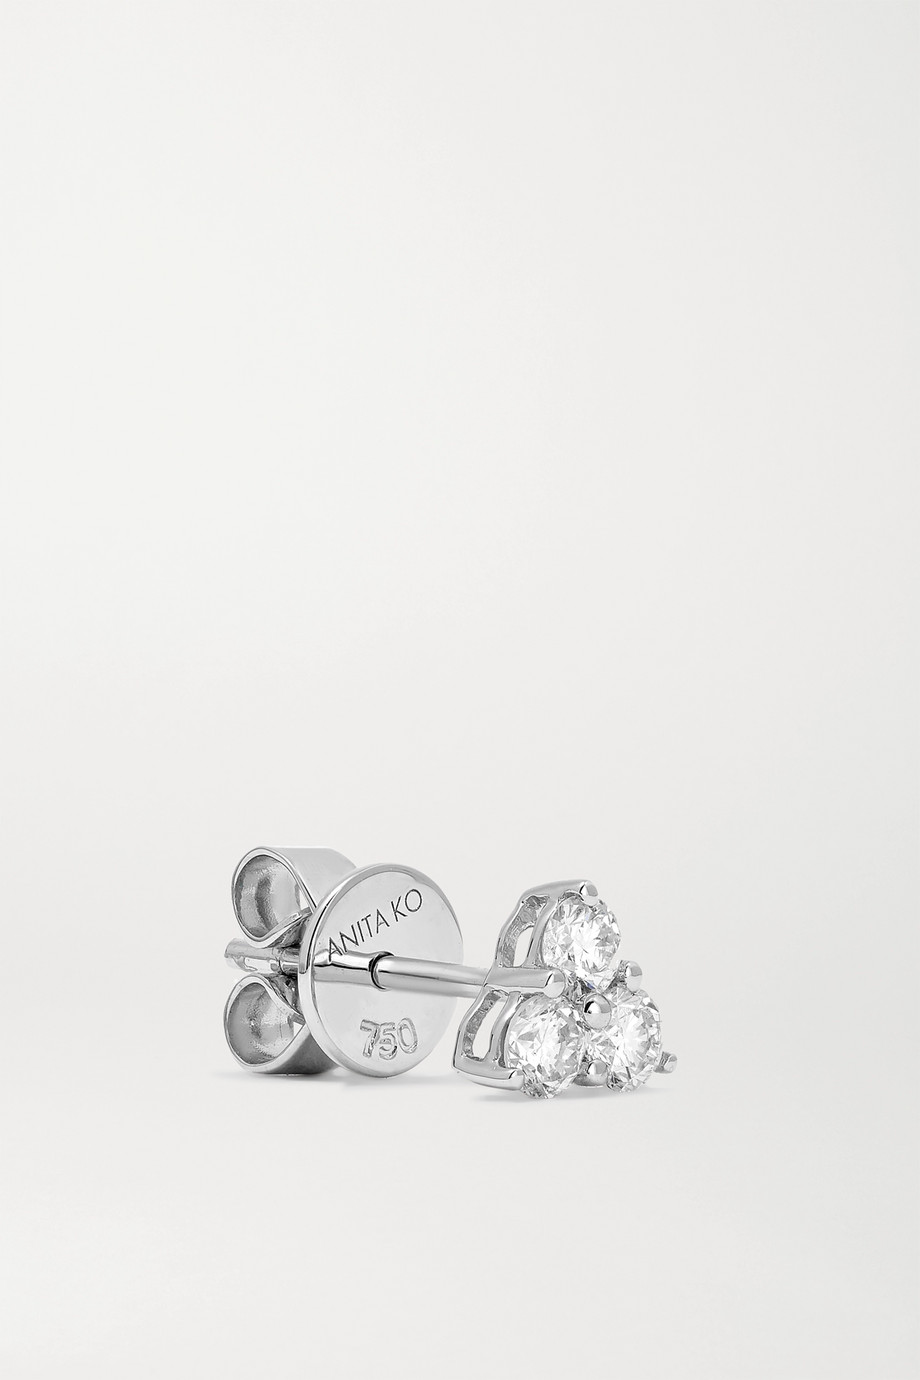 Anita Ko Trillion 18-karat white gold diamond earrings